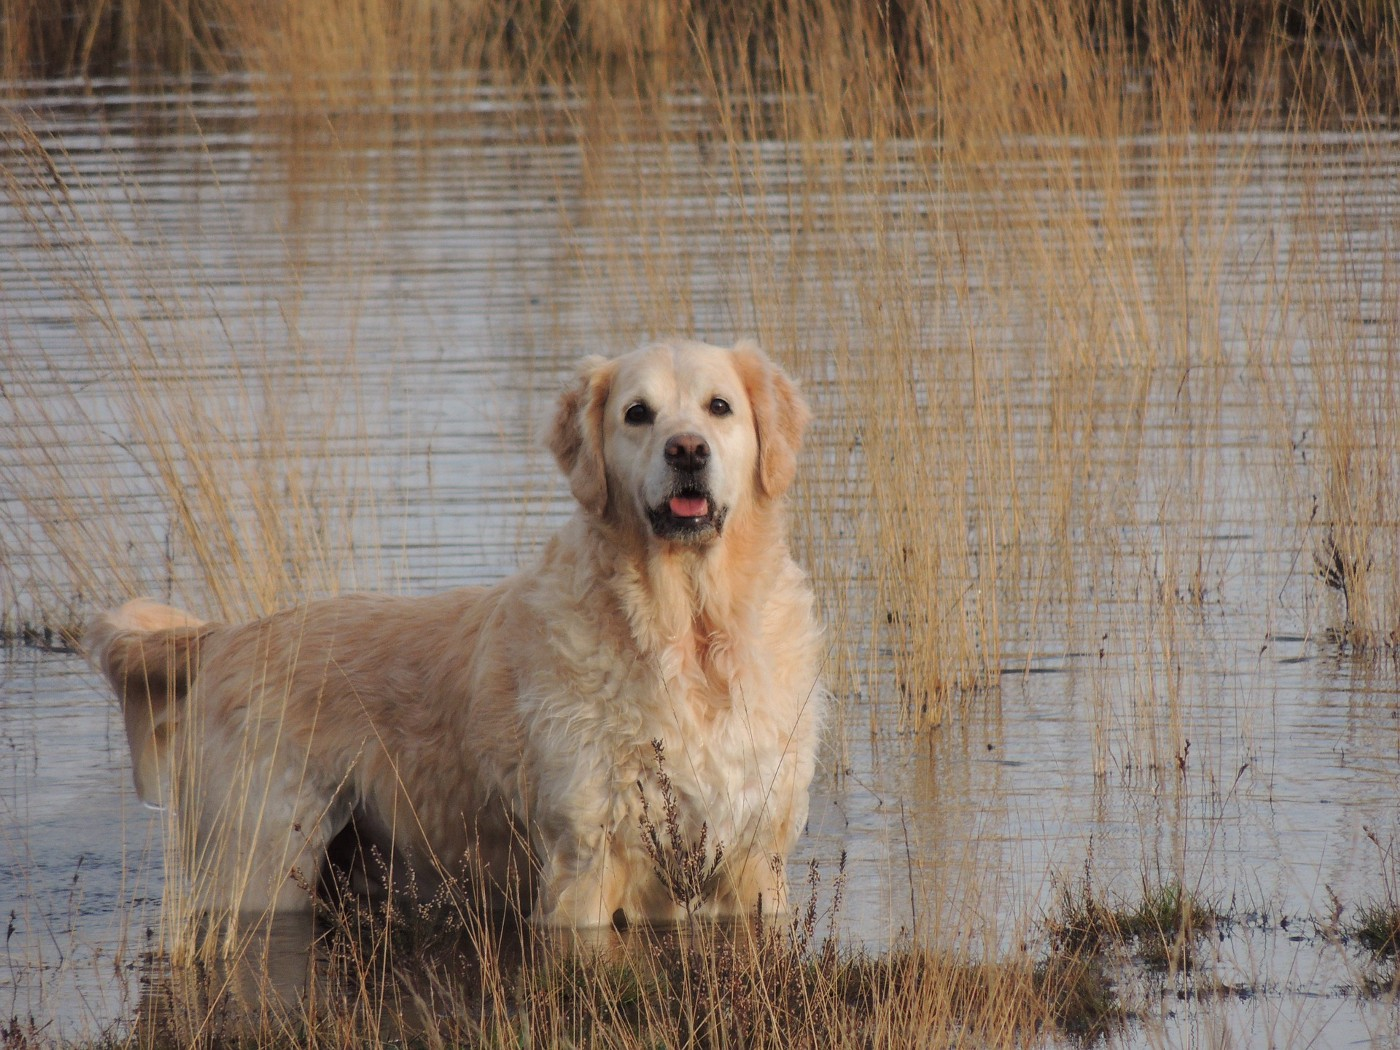 Large Golden Retriever standing in lake and marsh